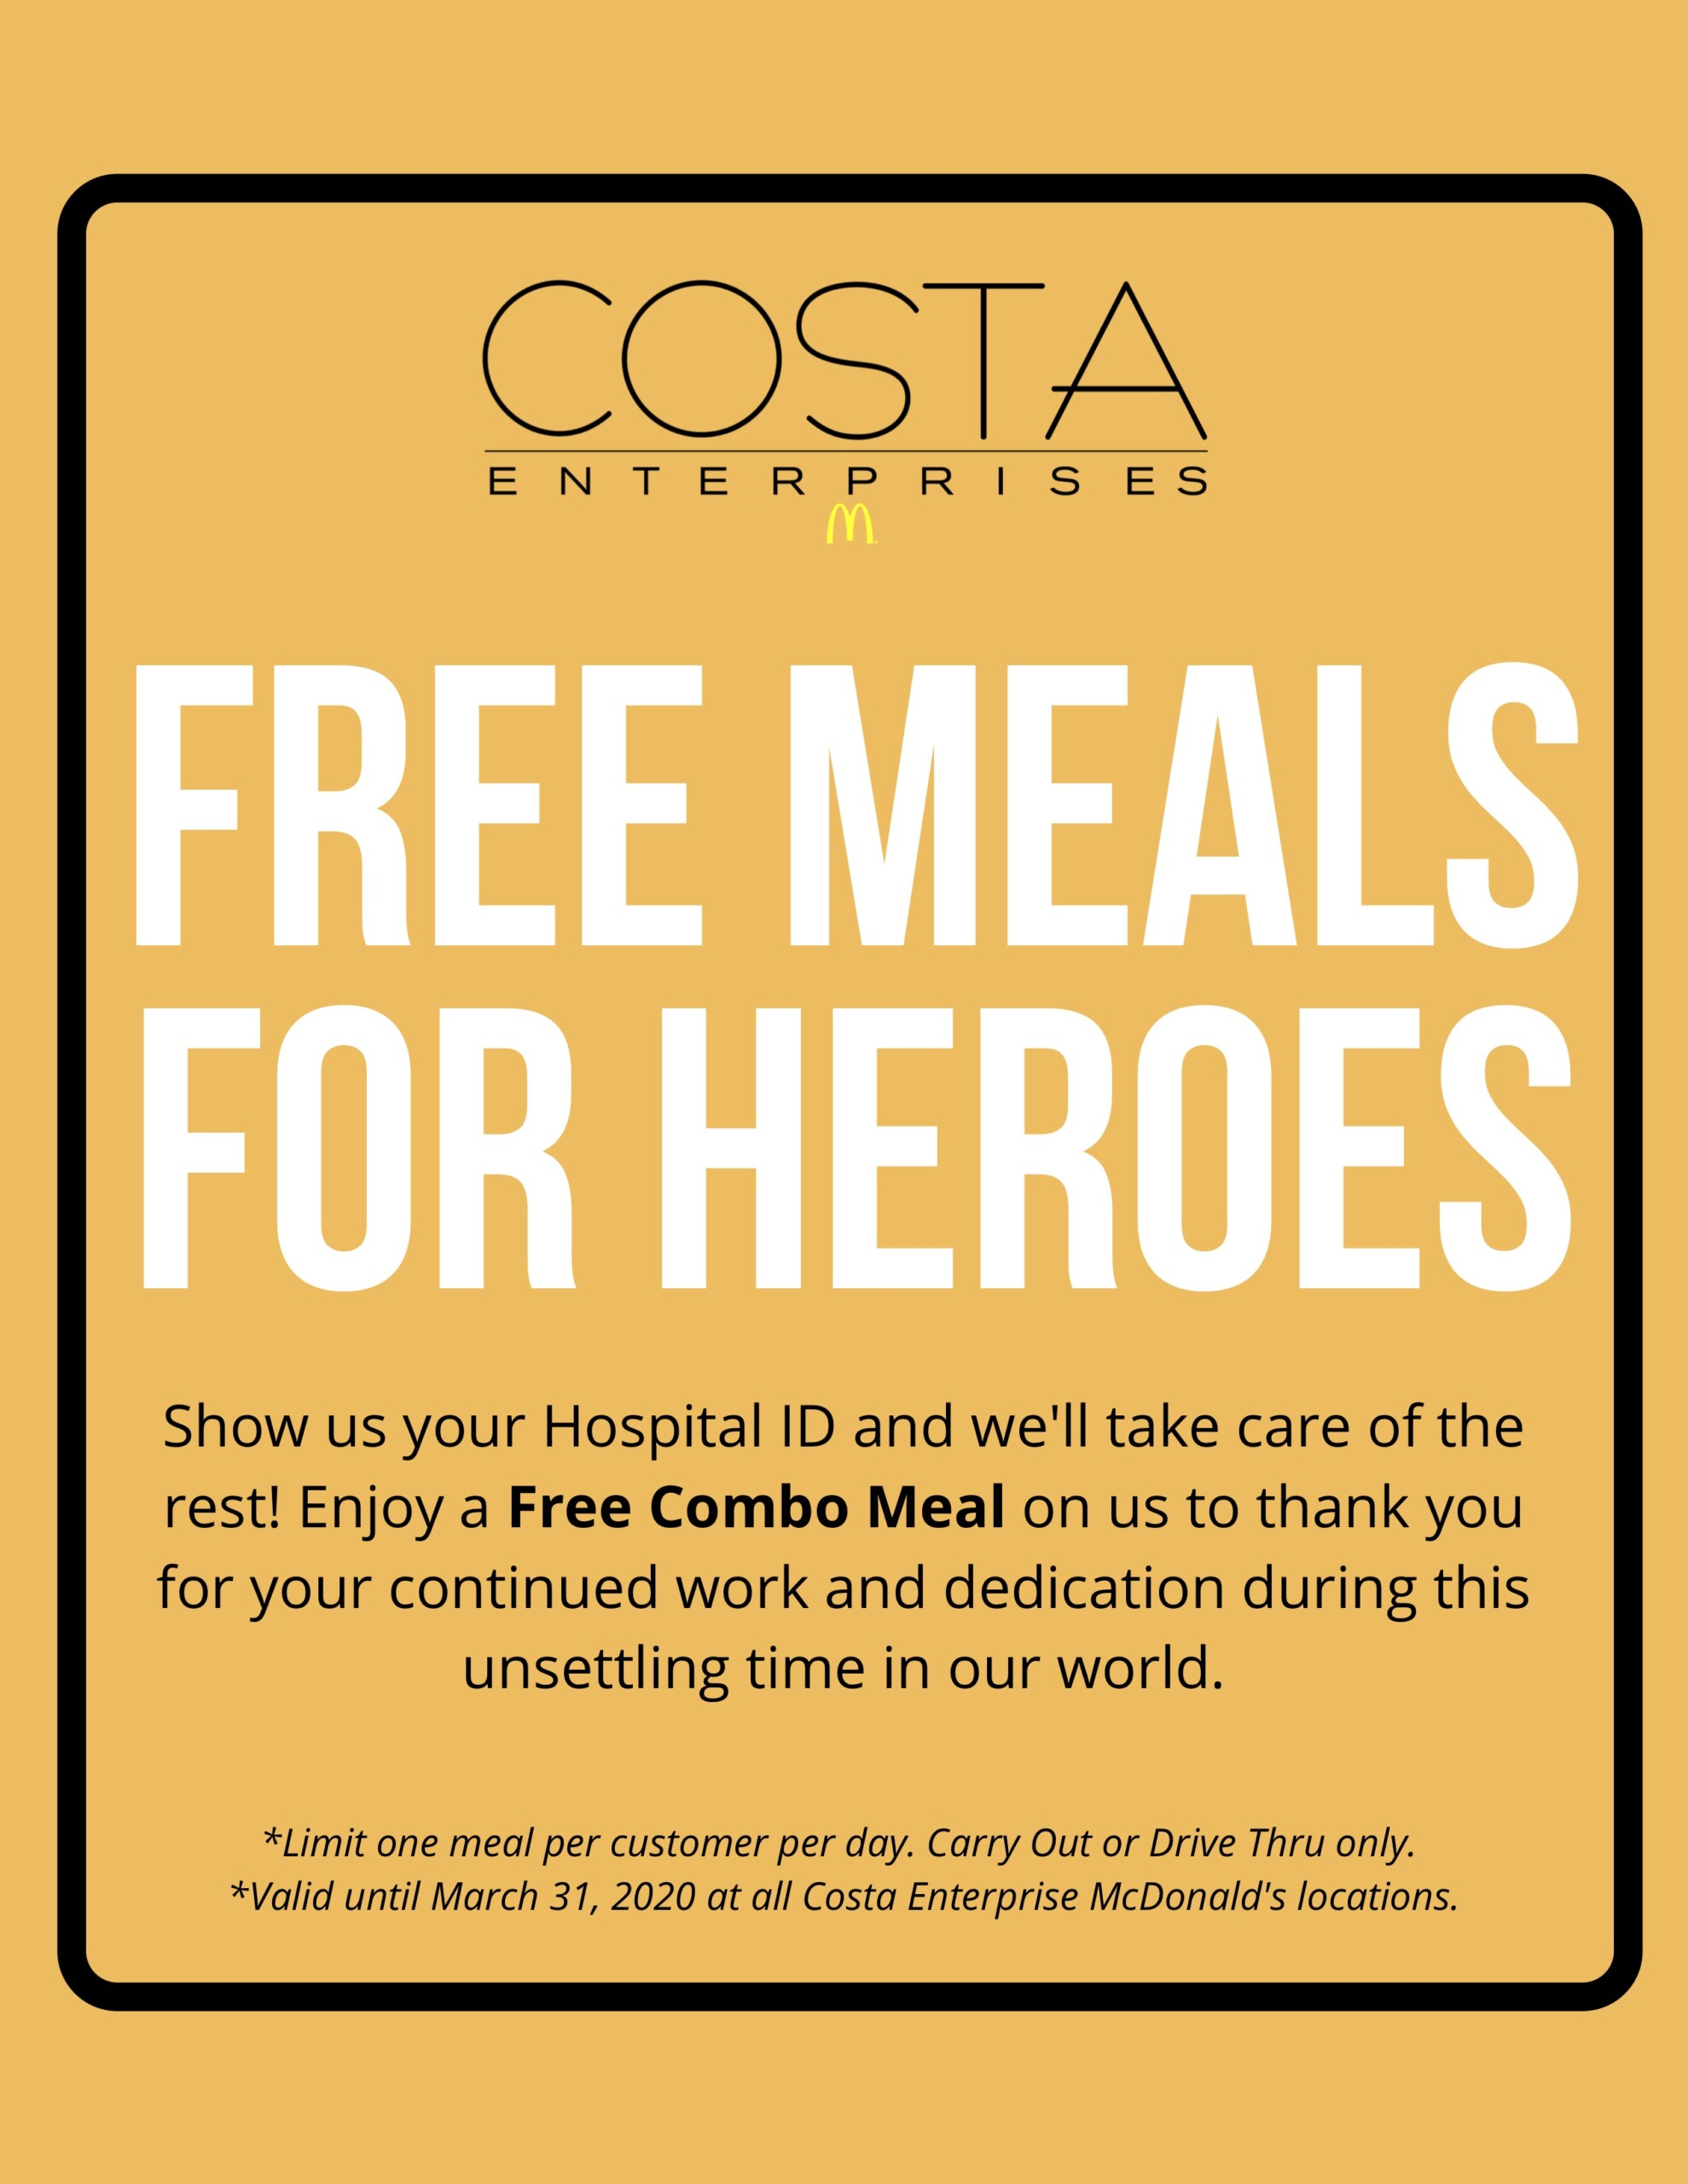 costa enterprises mcdonald s offers free meals for hospital employees in northwest florida proffitt pr reaching your target market free meals for hospital employees